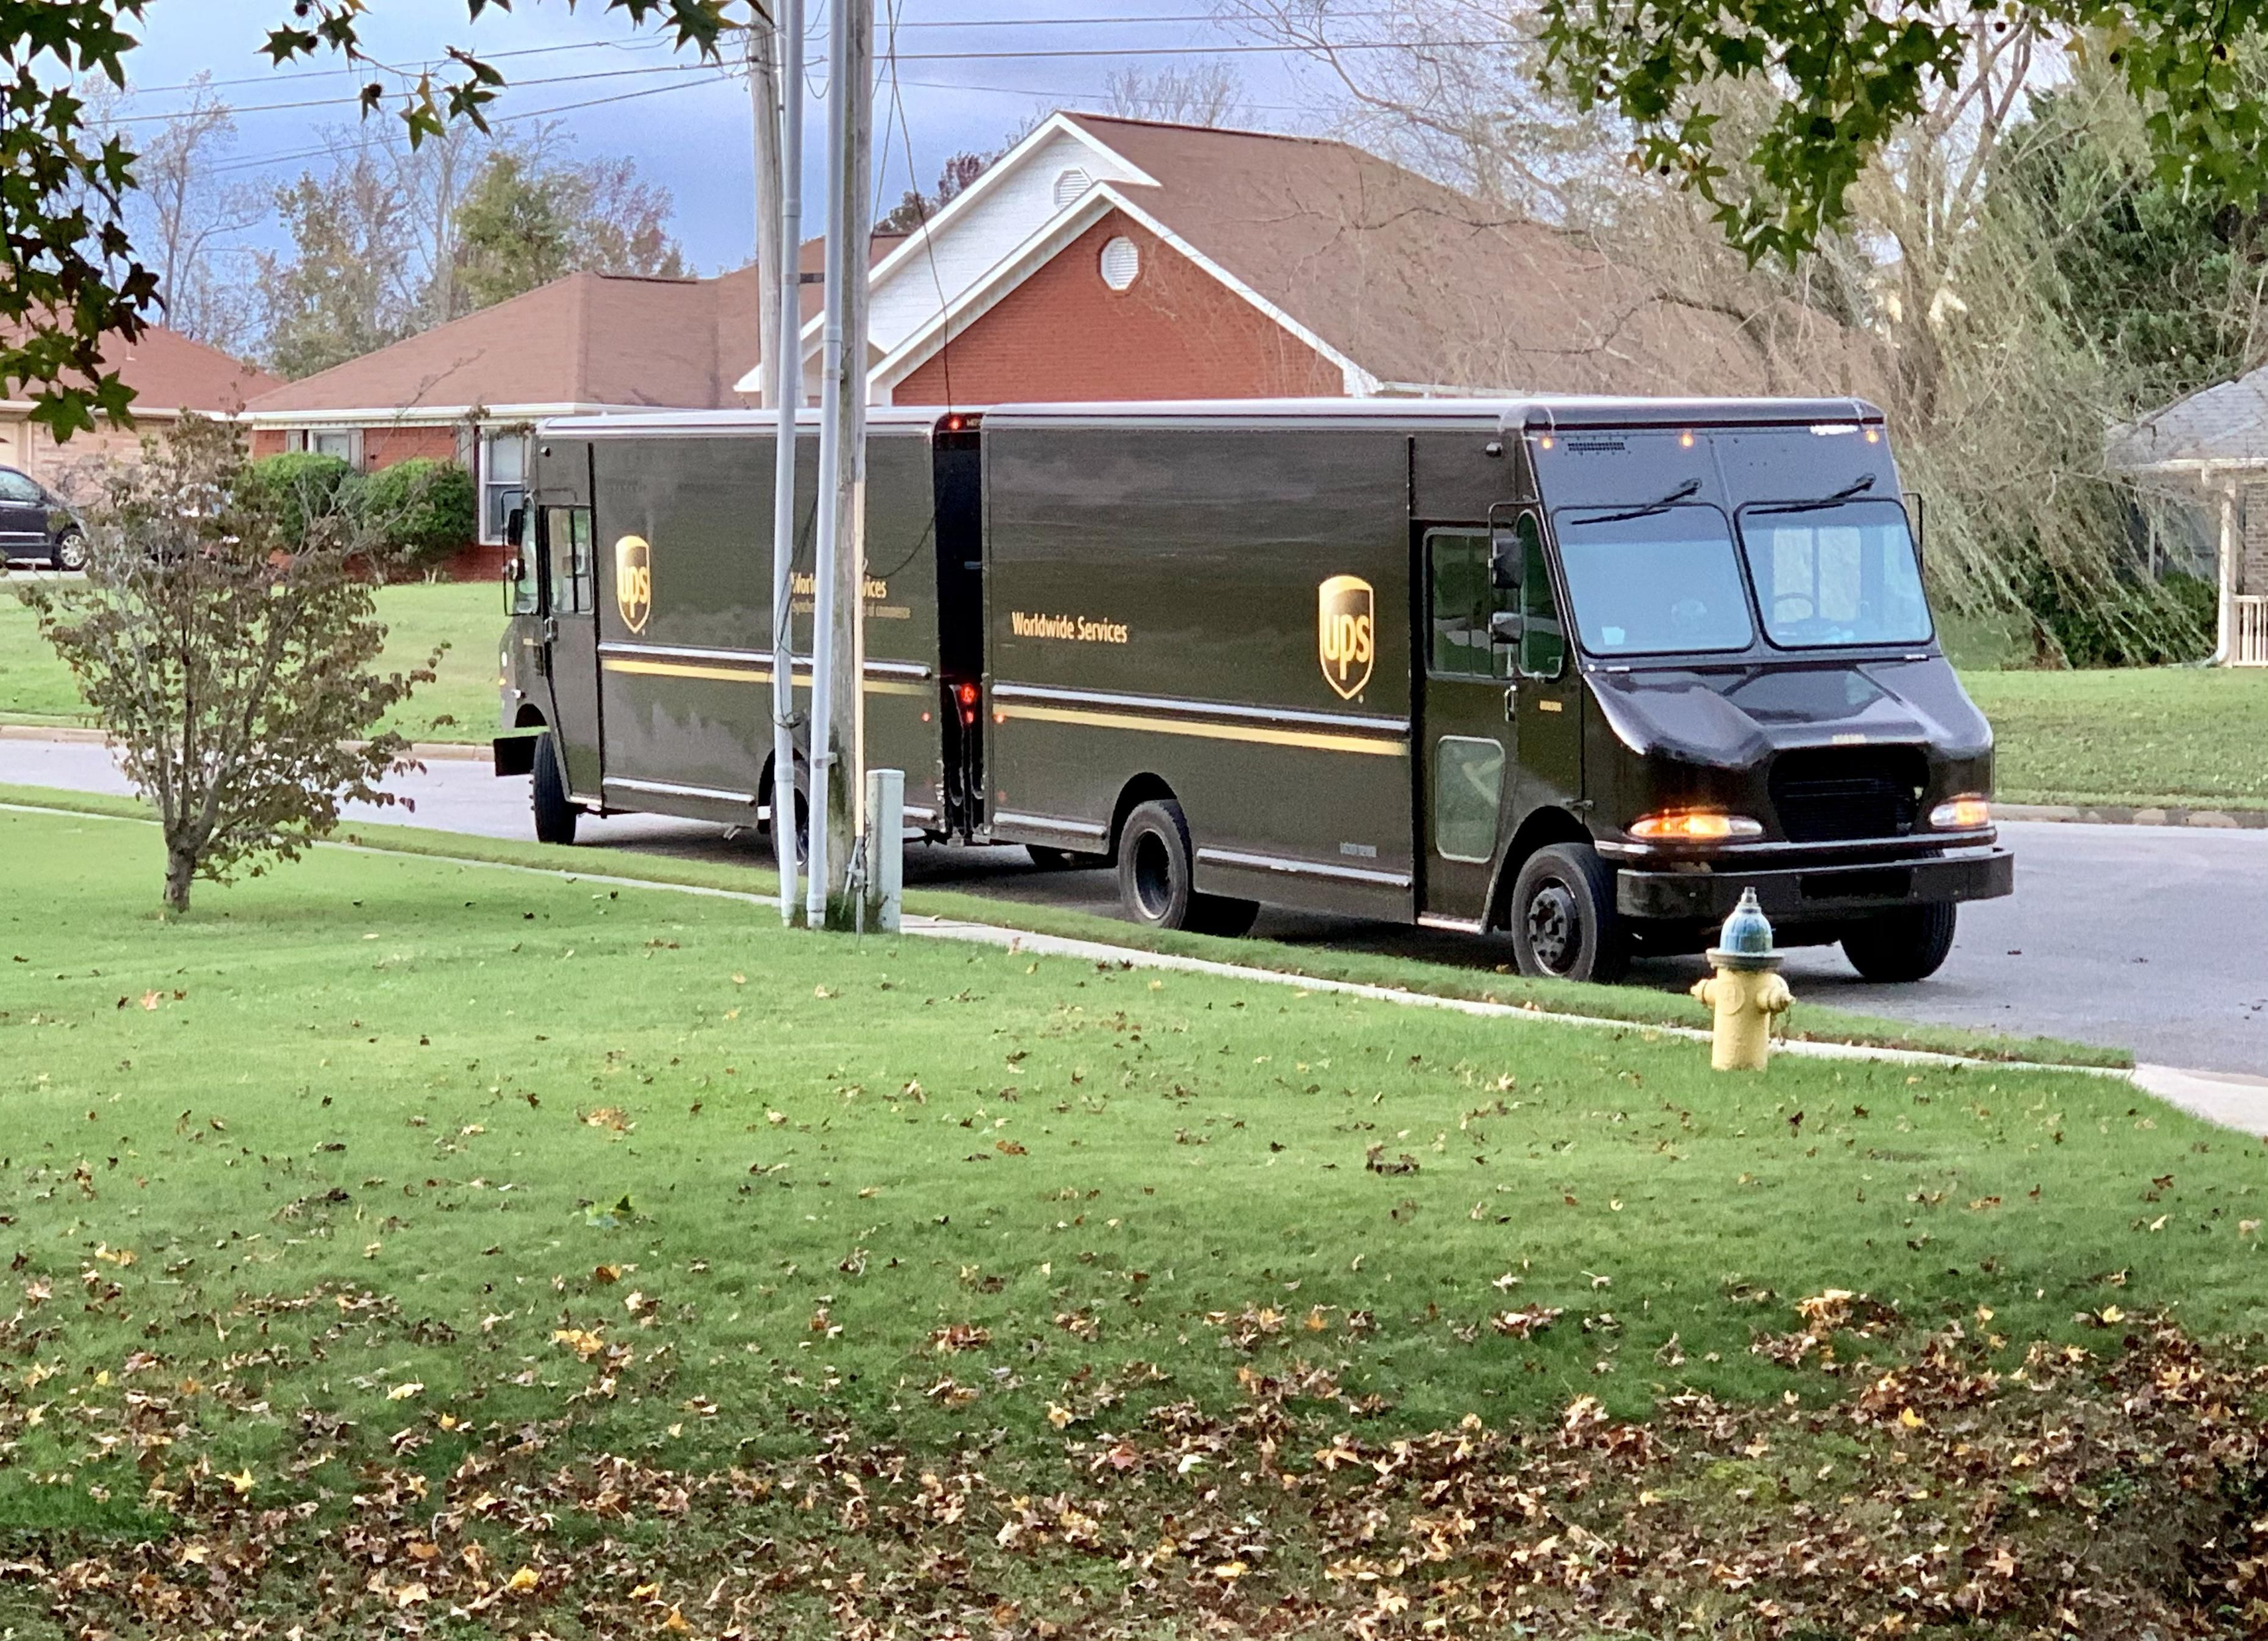 Today we witnessed the rare mating ritual of the UPS truck.